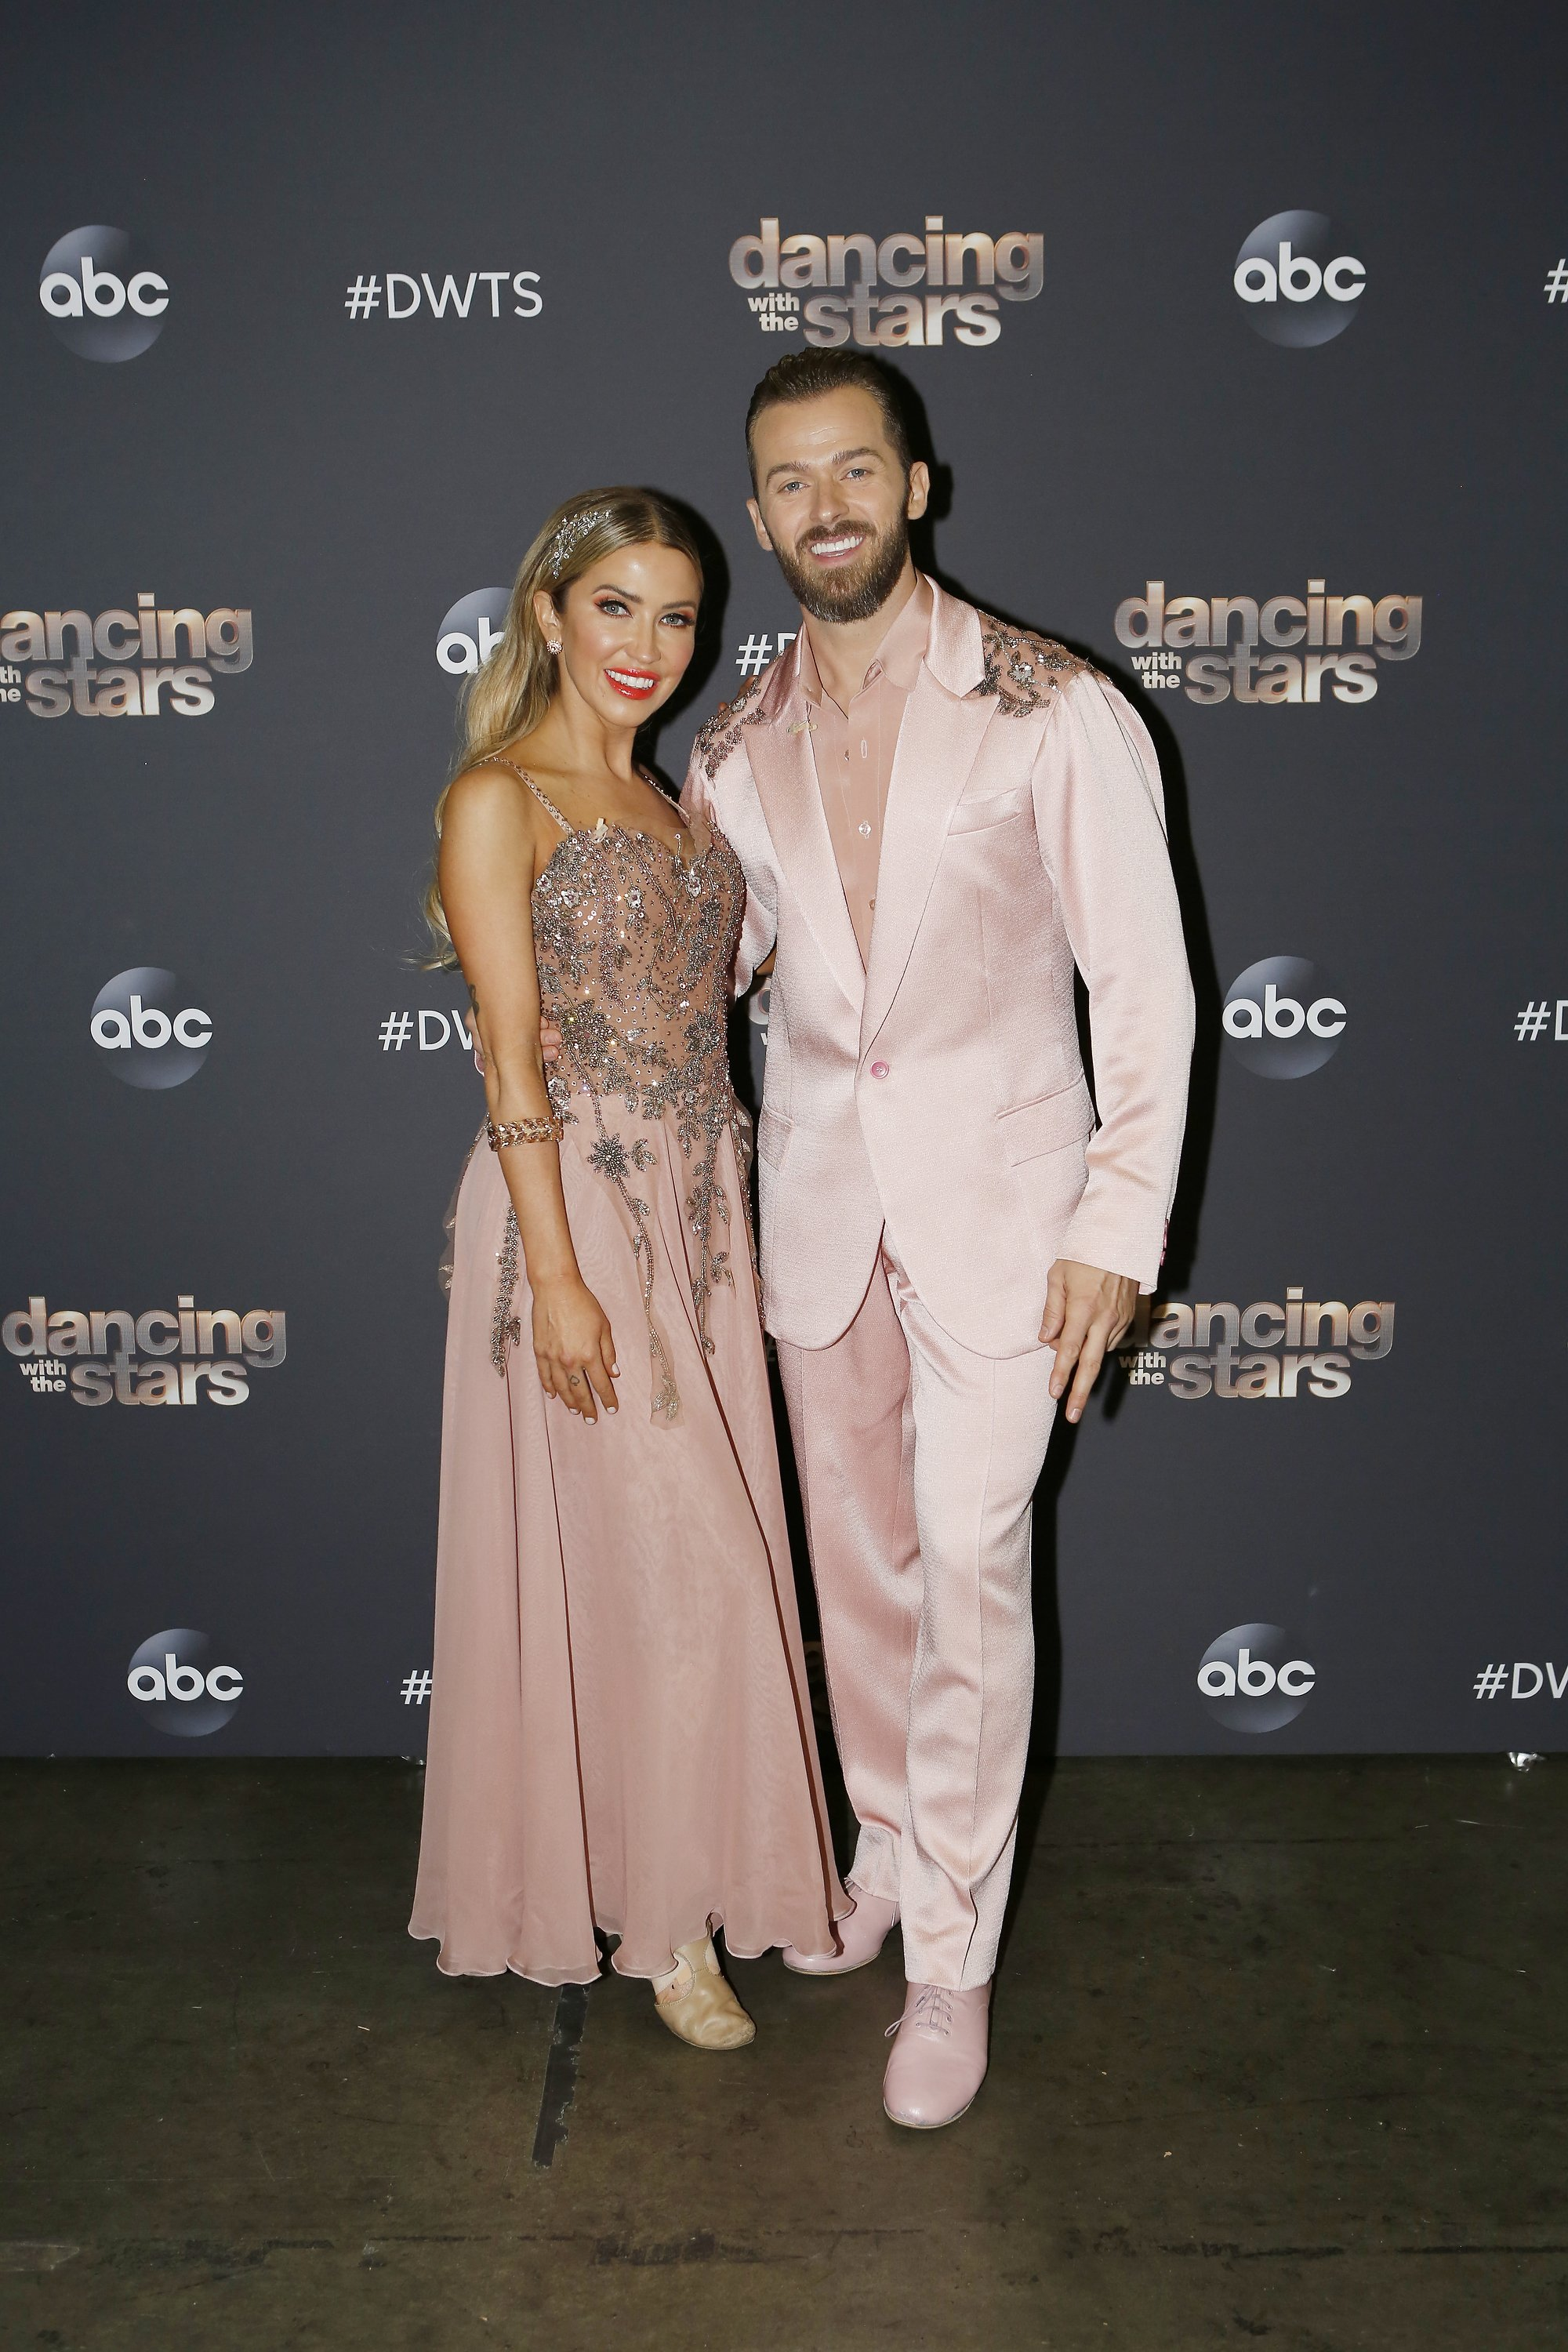 """Kaitlyn Bristowe and Artem Chigvintsev pictured at """"Dancing With The Stars,"""" 2020. 